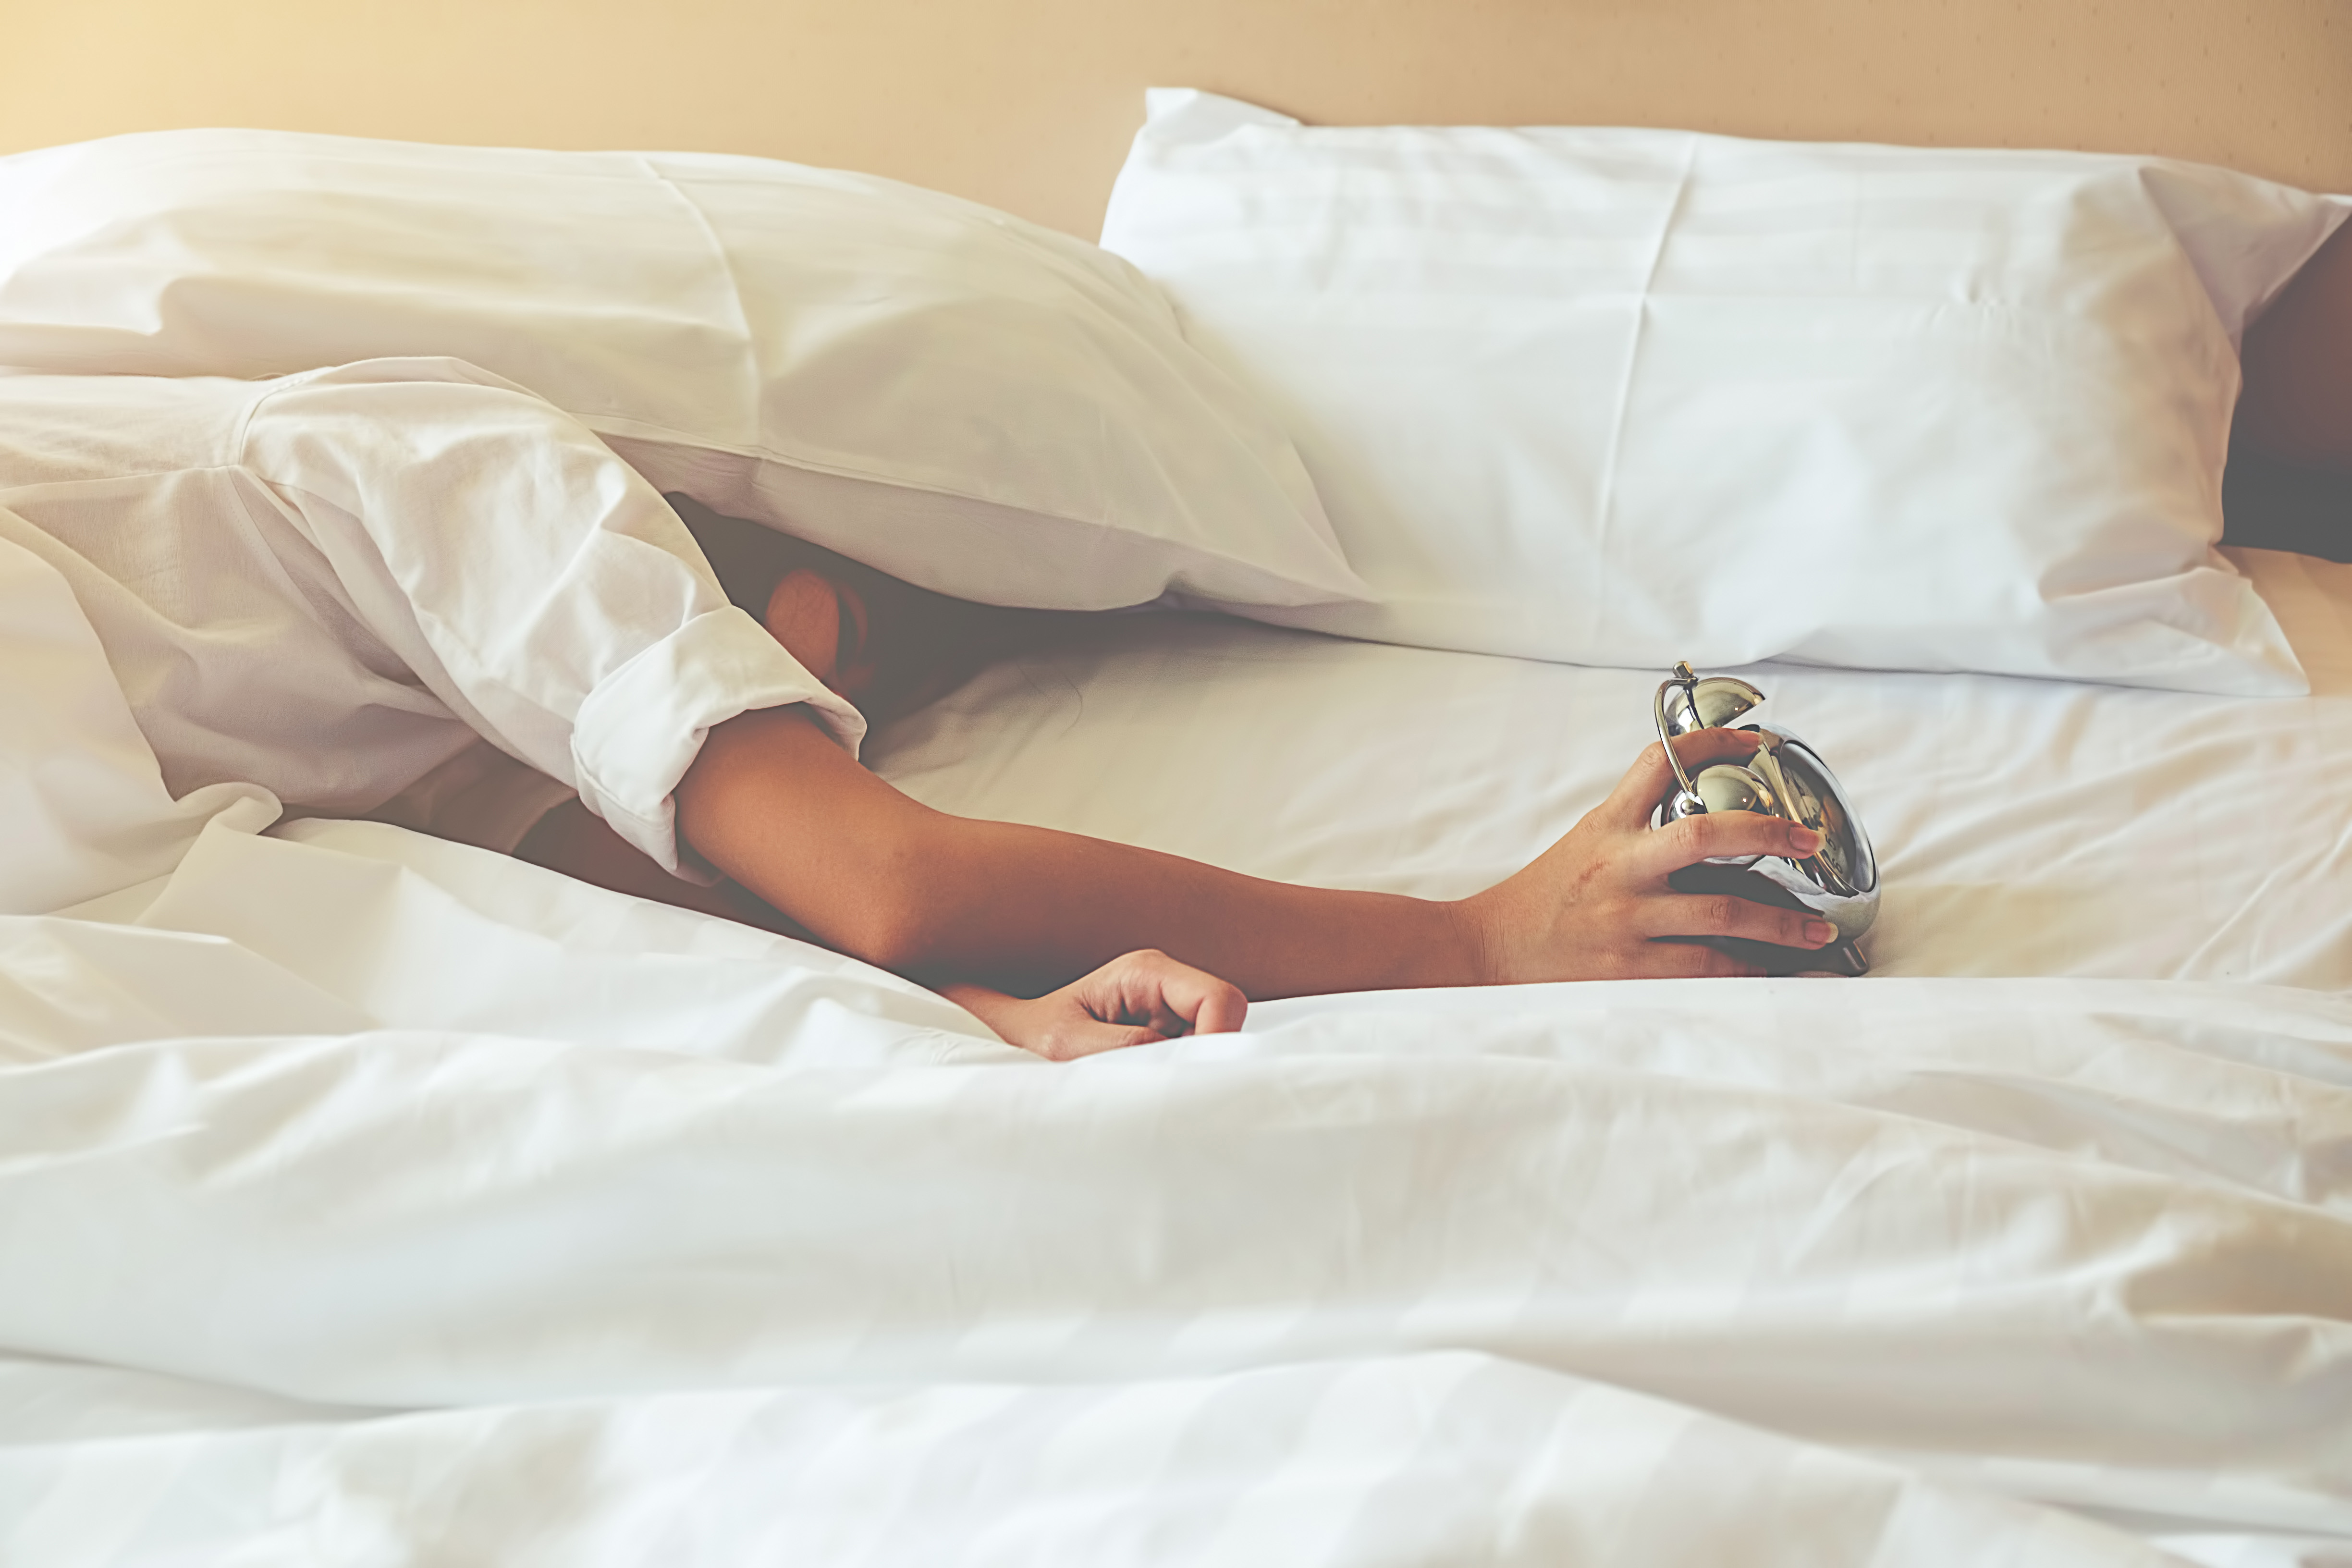 Bedtime rituals in my 40s compared to my 20s